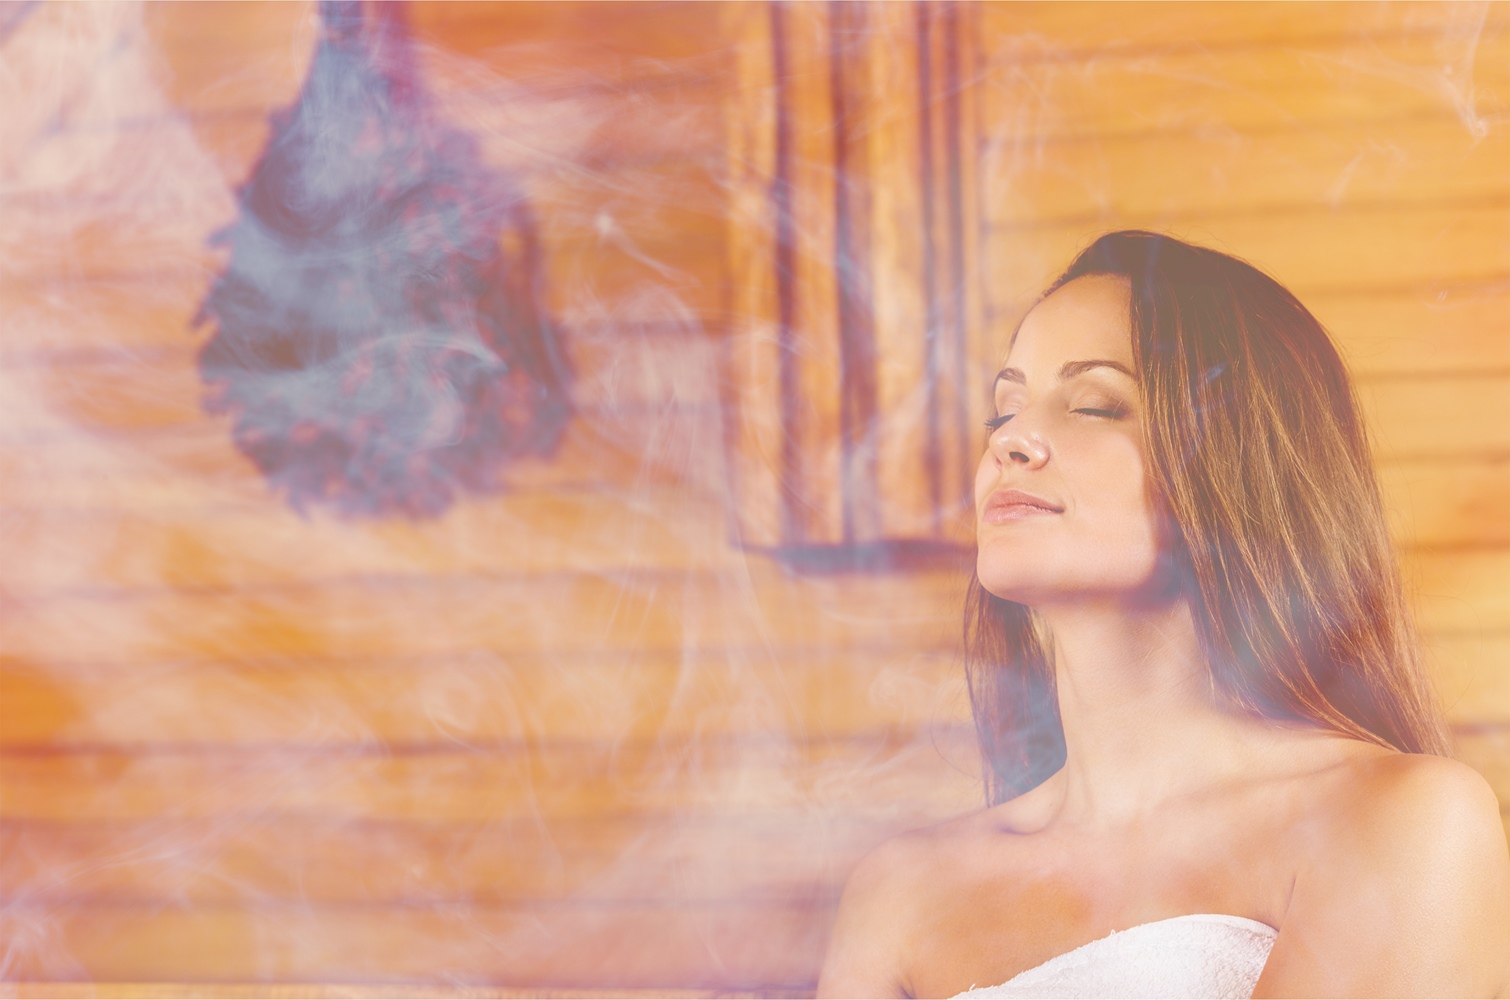 7 Health Benefits of Infrared sauna baths that Aren't Detoxification